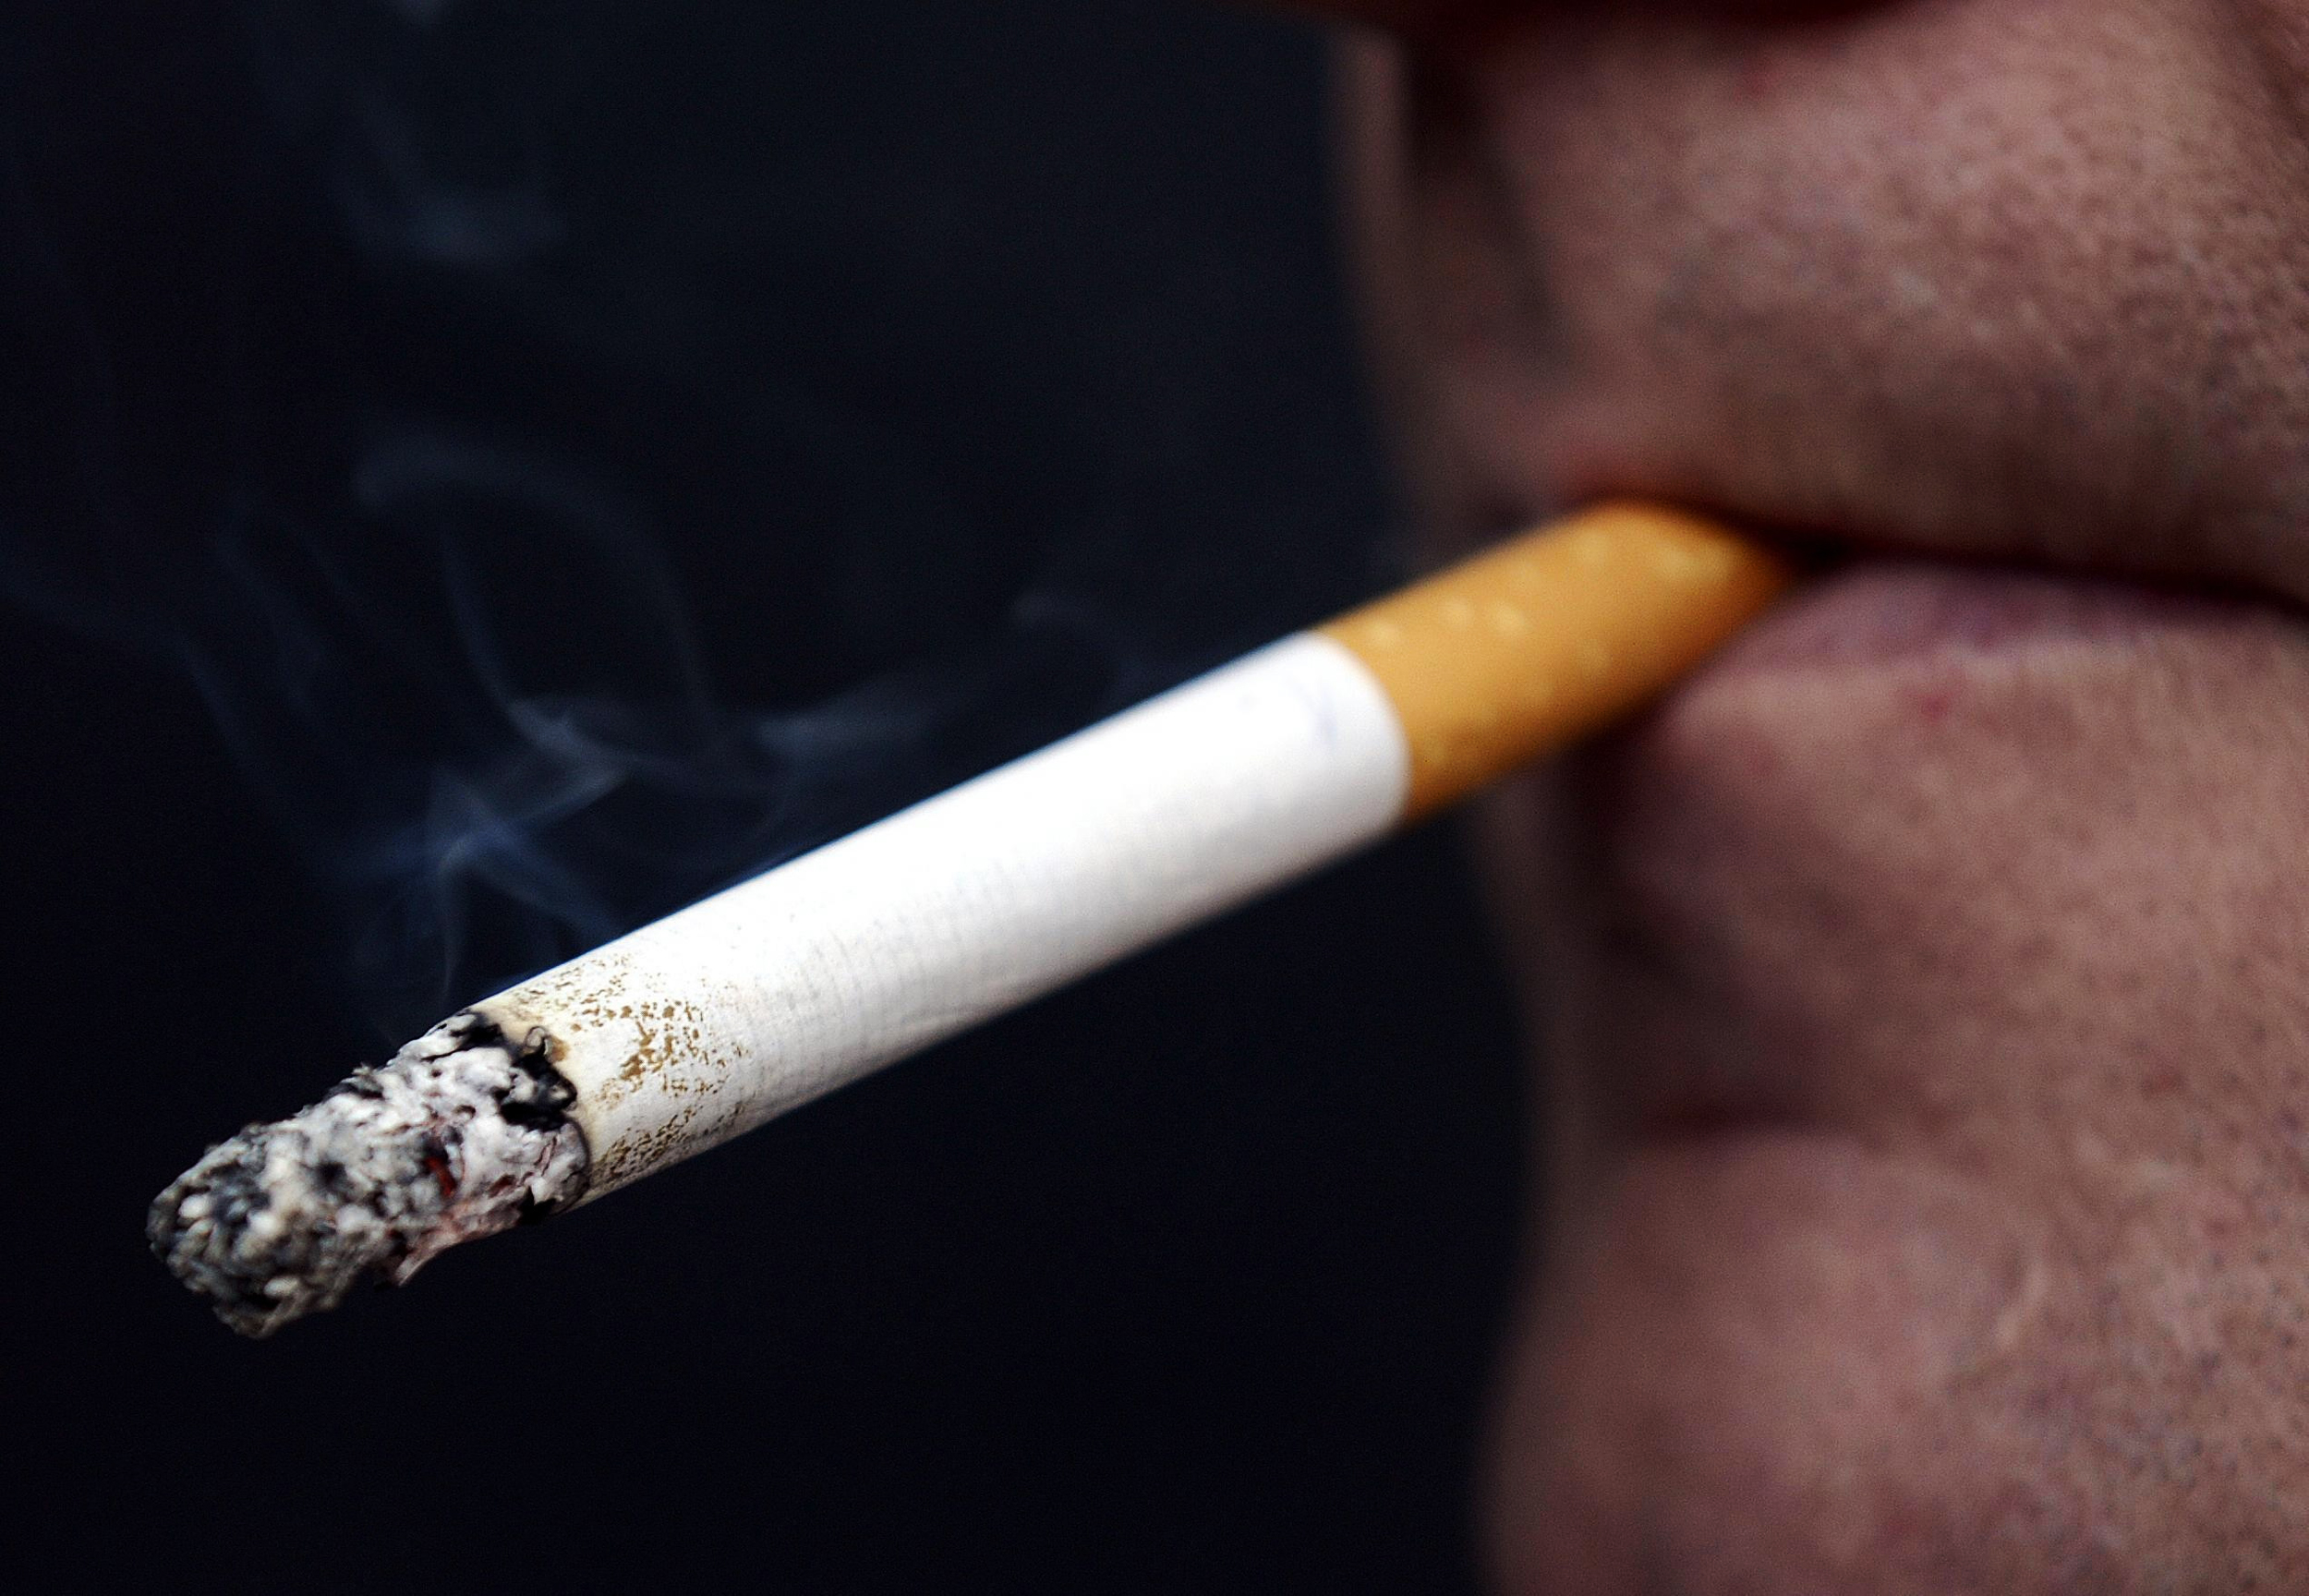 ban cigarette essay smoke Need to write an argumentative essay on due to the breathing of the smoke here are a few ideas for your smoking effects essay every cigarette scars.